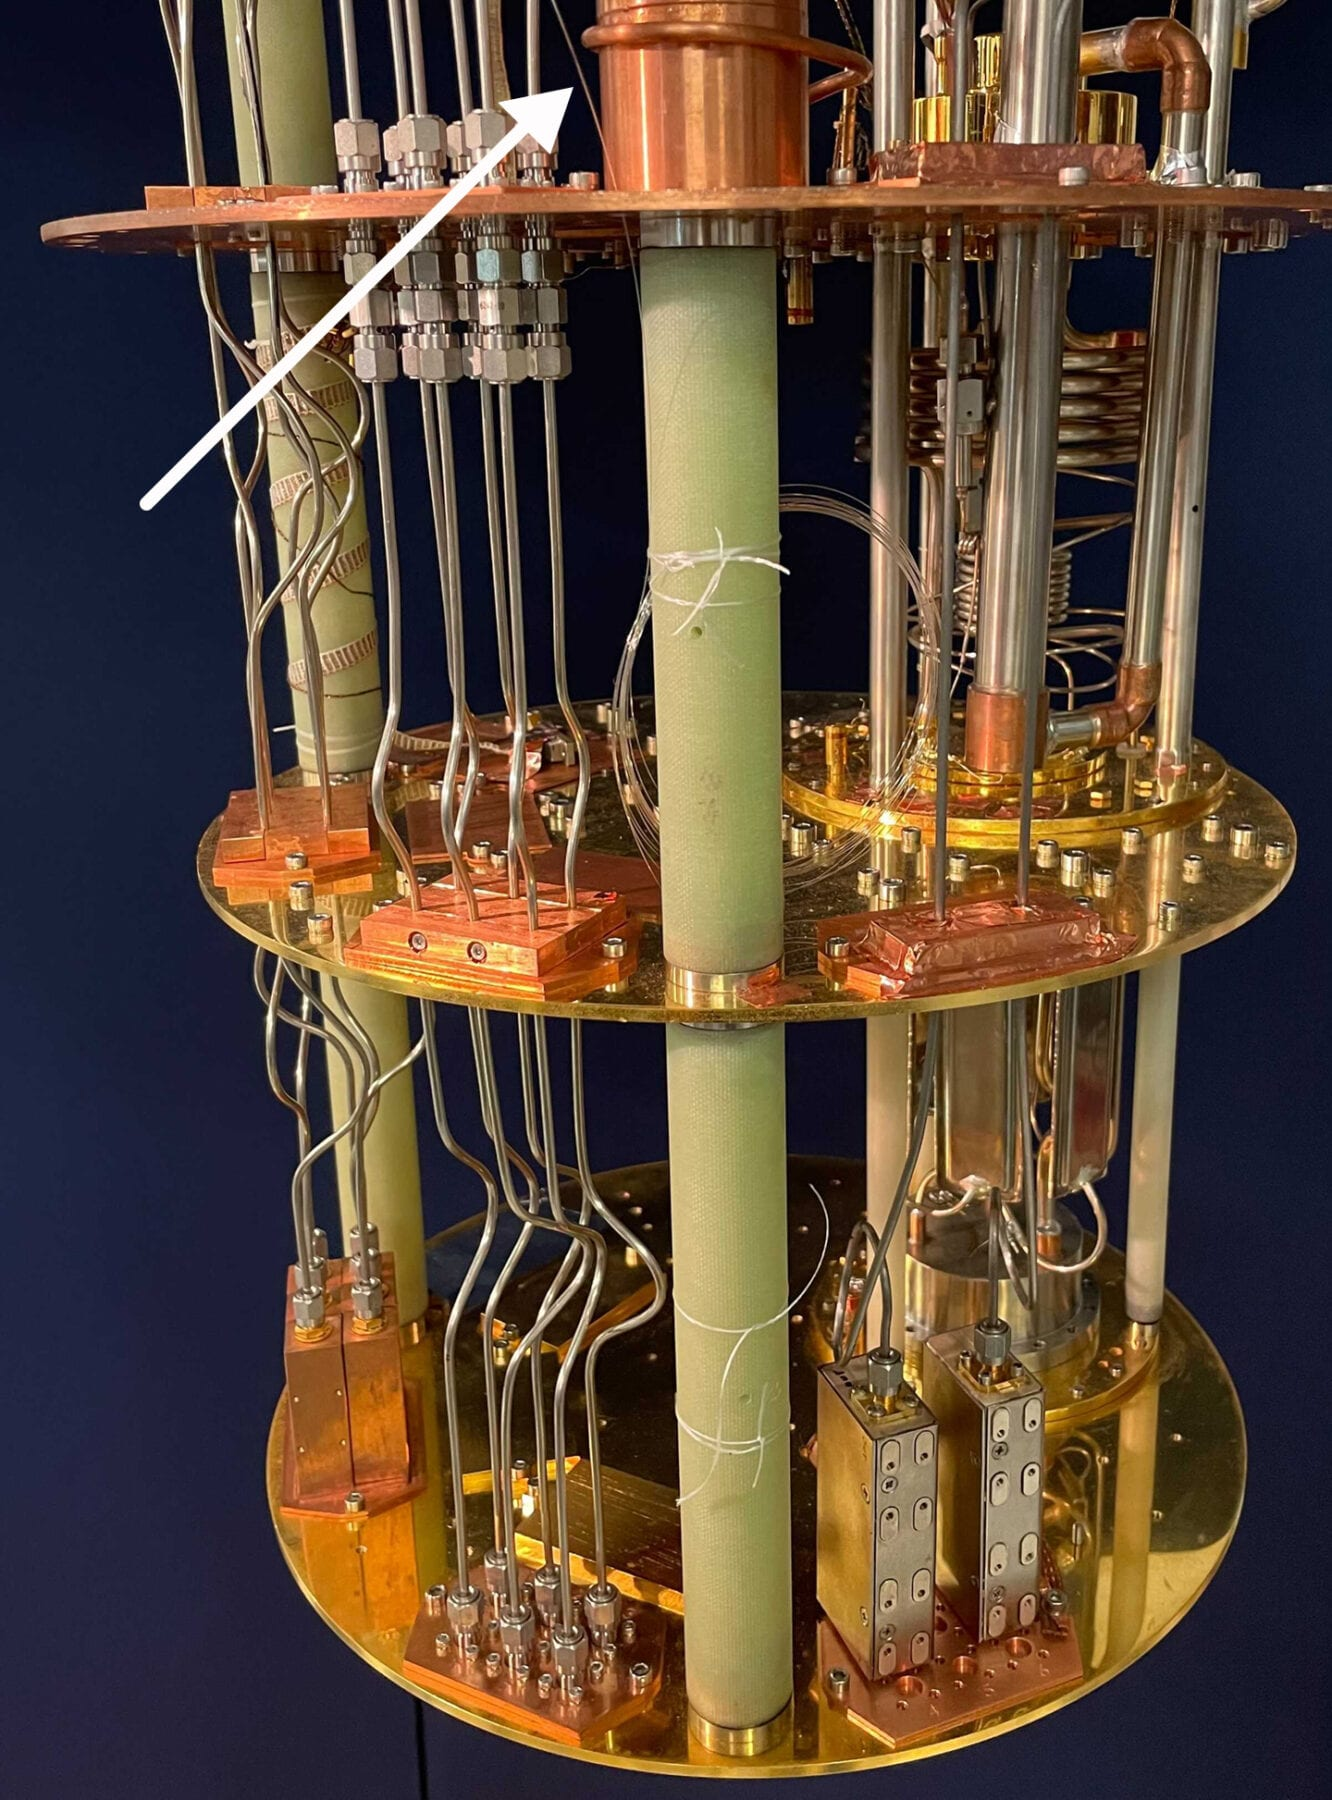 NIST physicists measured and controlled a superconducting quantum bit (qubit) using light-conducting fiber (indicated by white arrow) instead of metal electrical cables like the 14 shown here inside a cryostat. By using fiber, researchers could potentially pack a million qubits into a quantum computer rather than just a few thousand. Credit: F. Lecocq/NIST